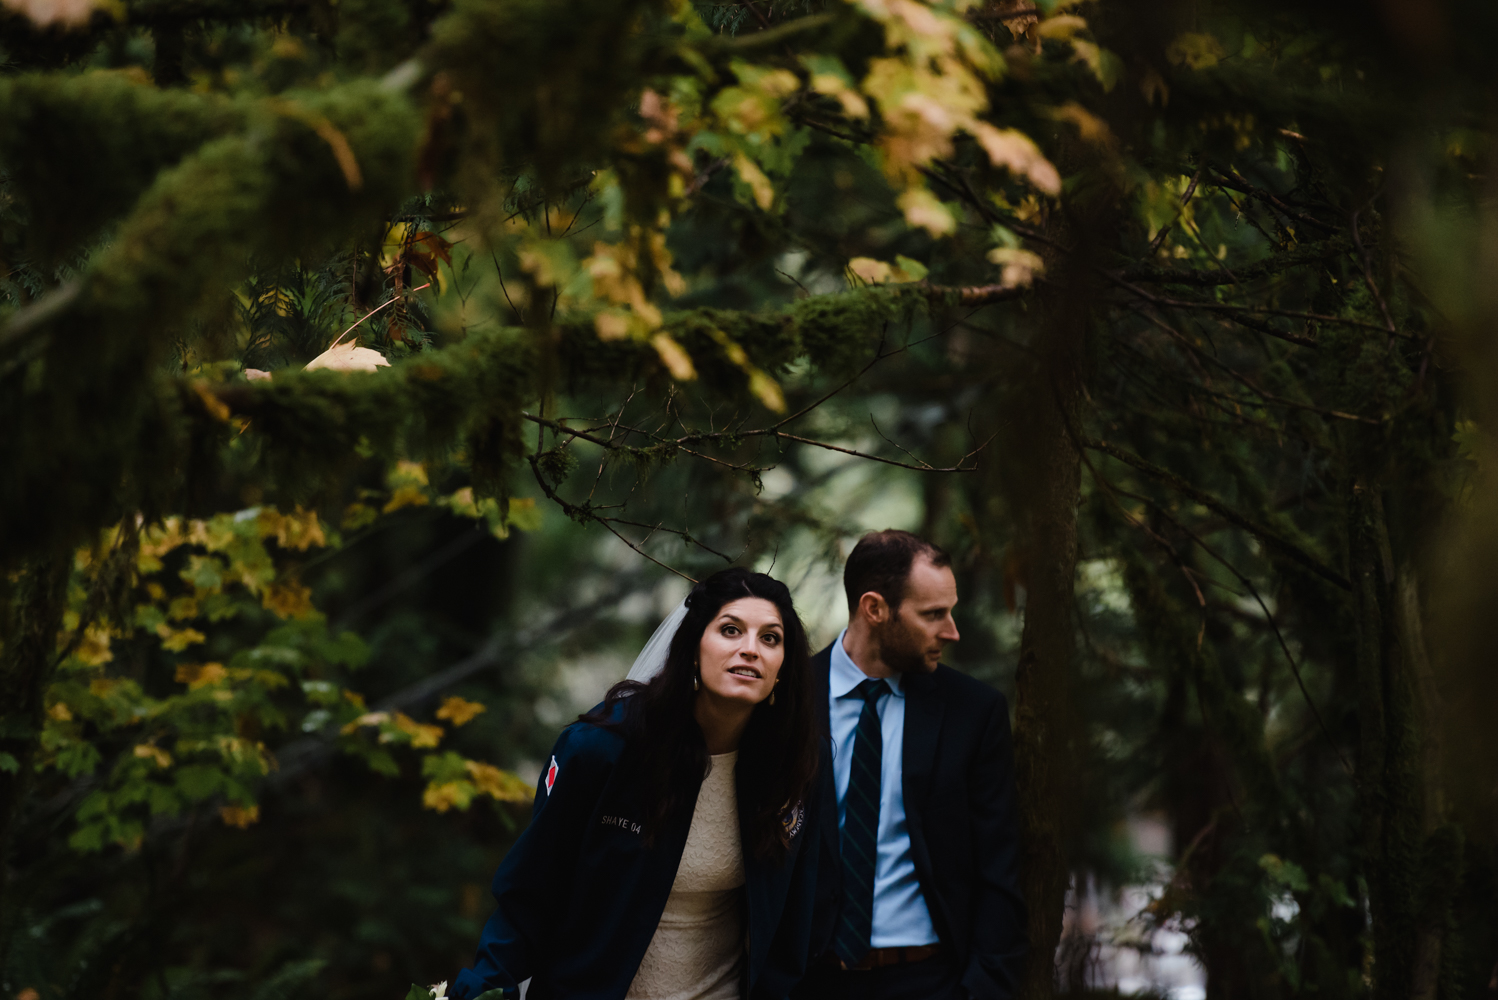 Squamish Wedding Photographer91.jpg